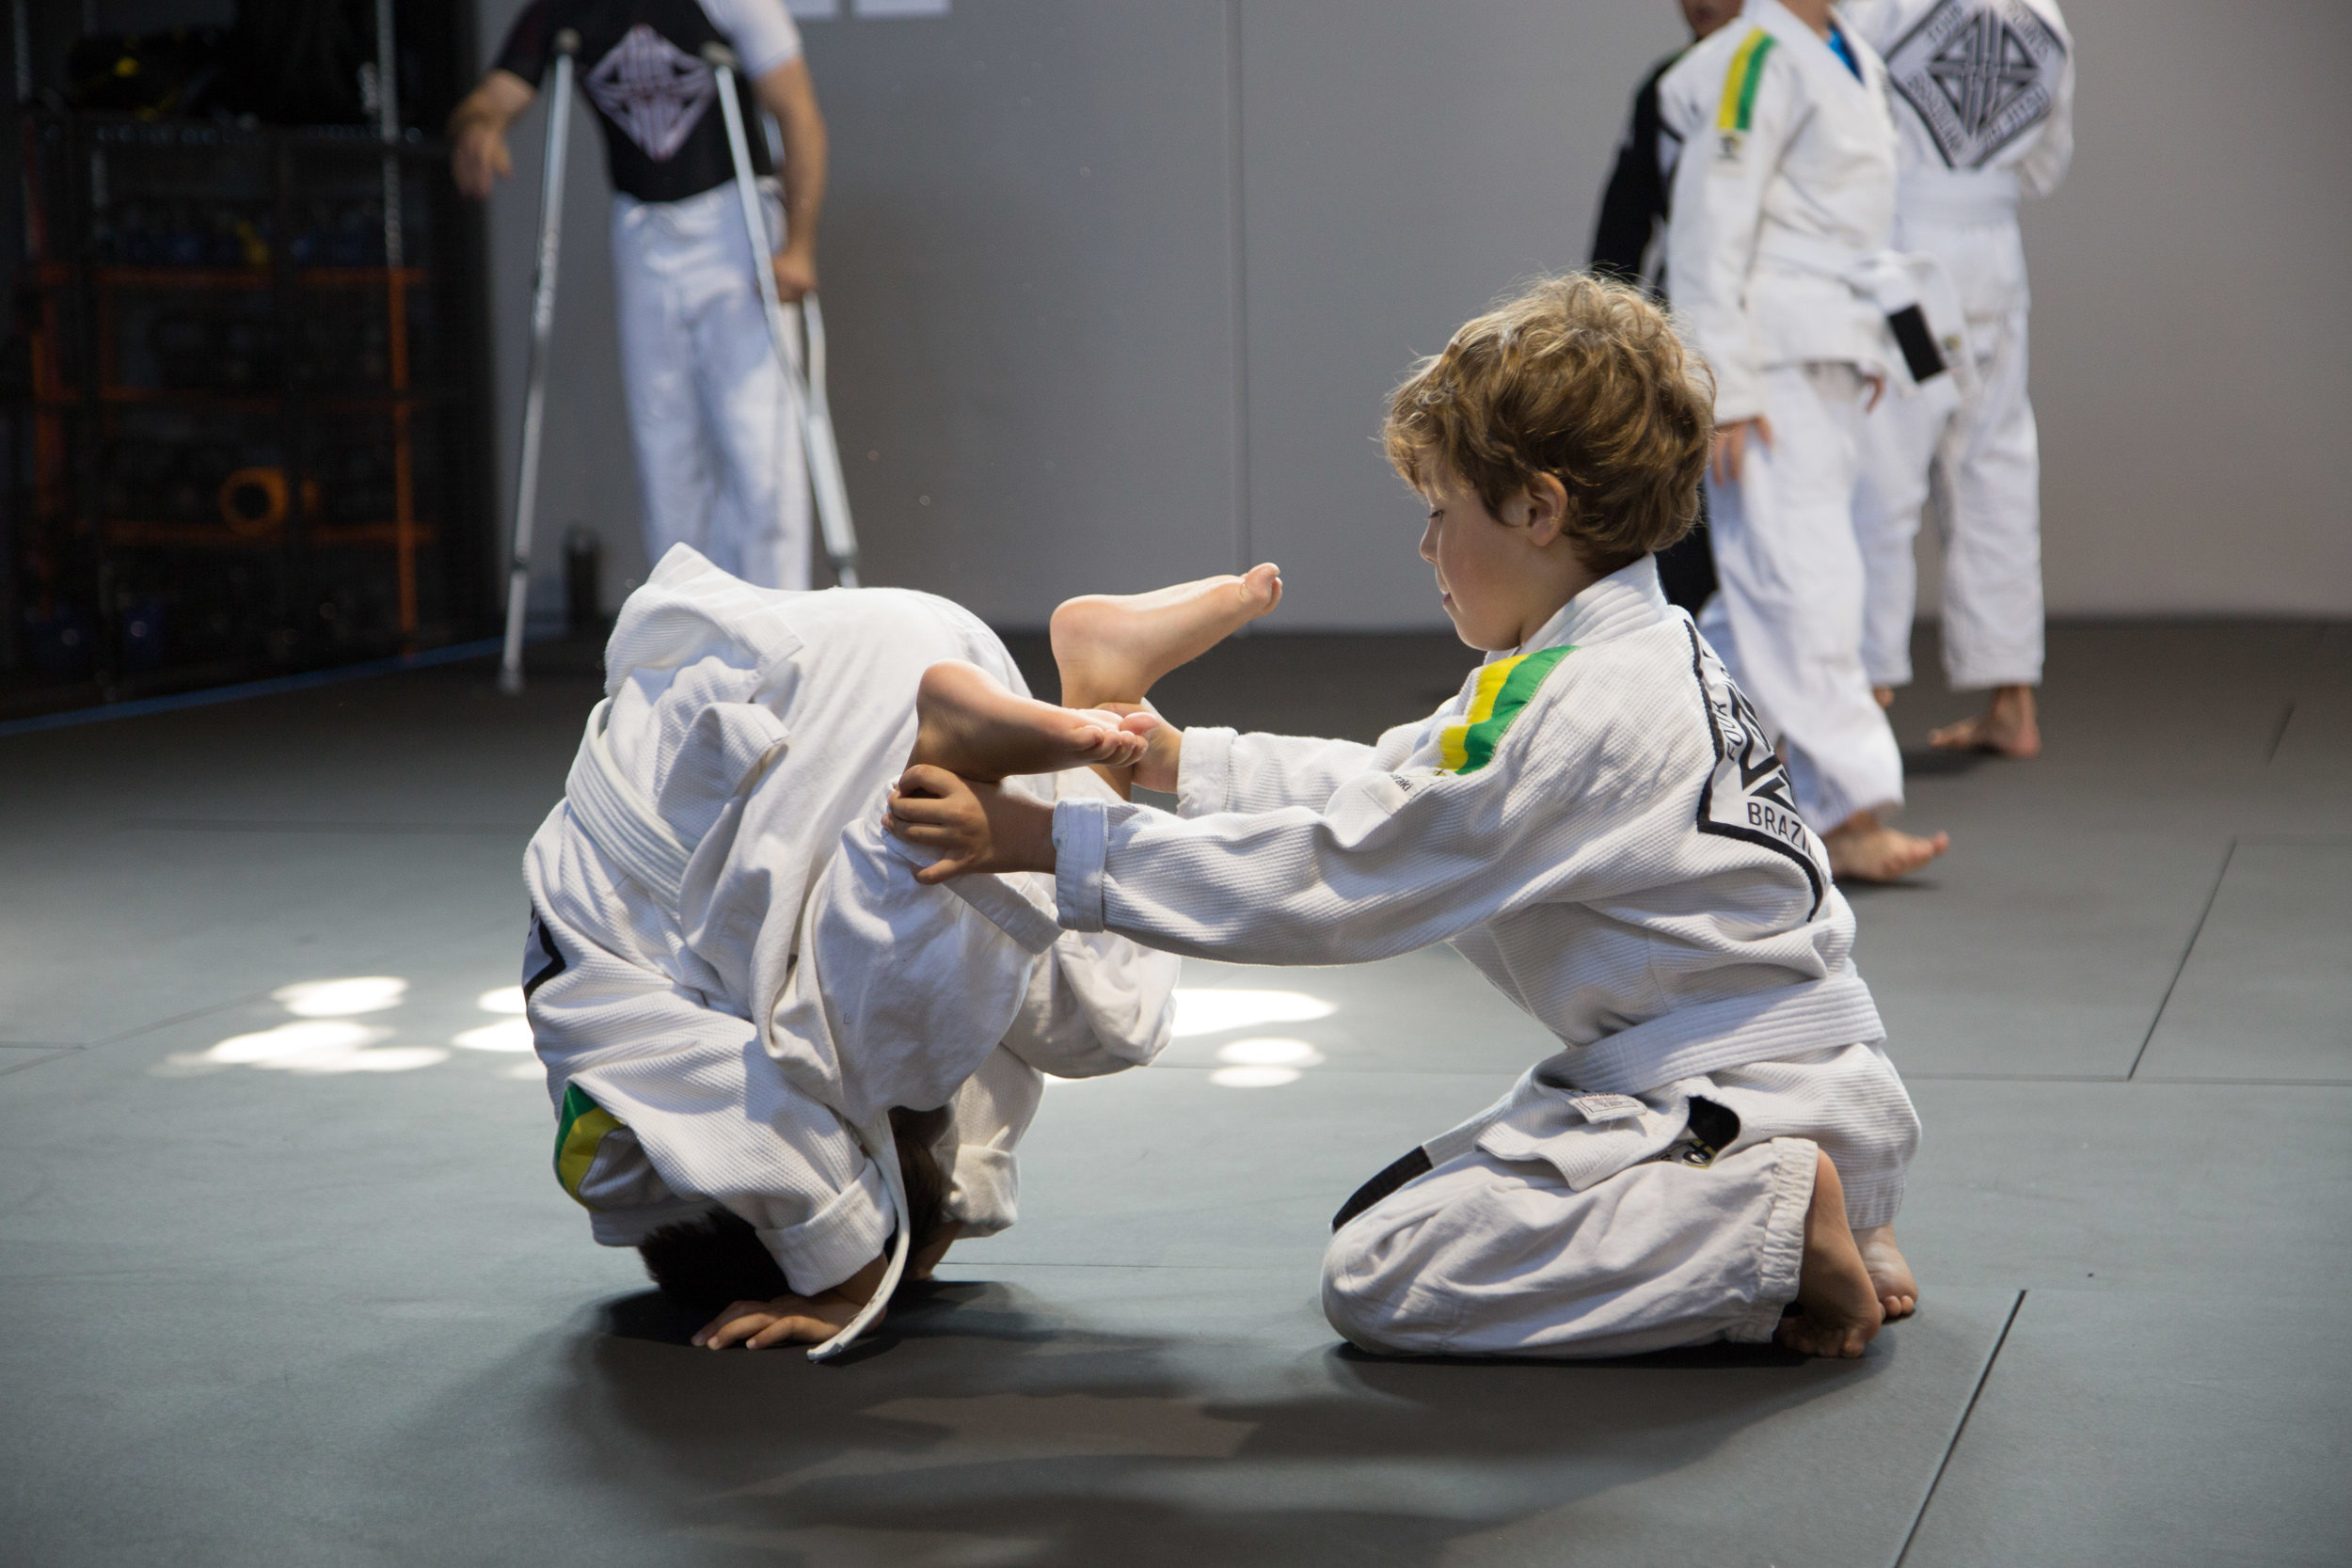 bjj-leader-friend-team-class-kids